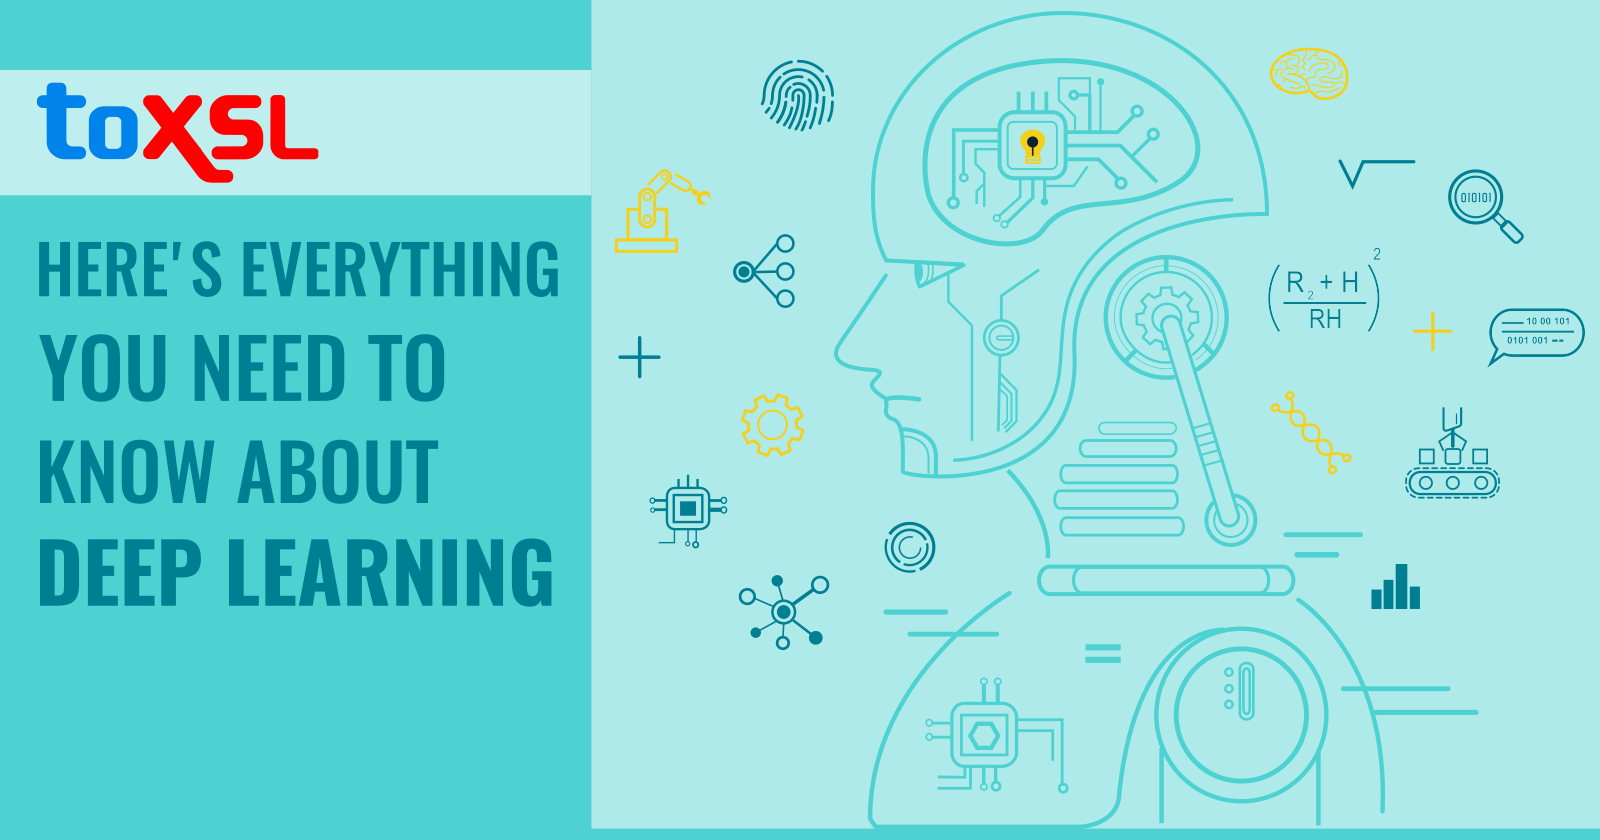 Here's Everything You Need To Know About Deep Learning